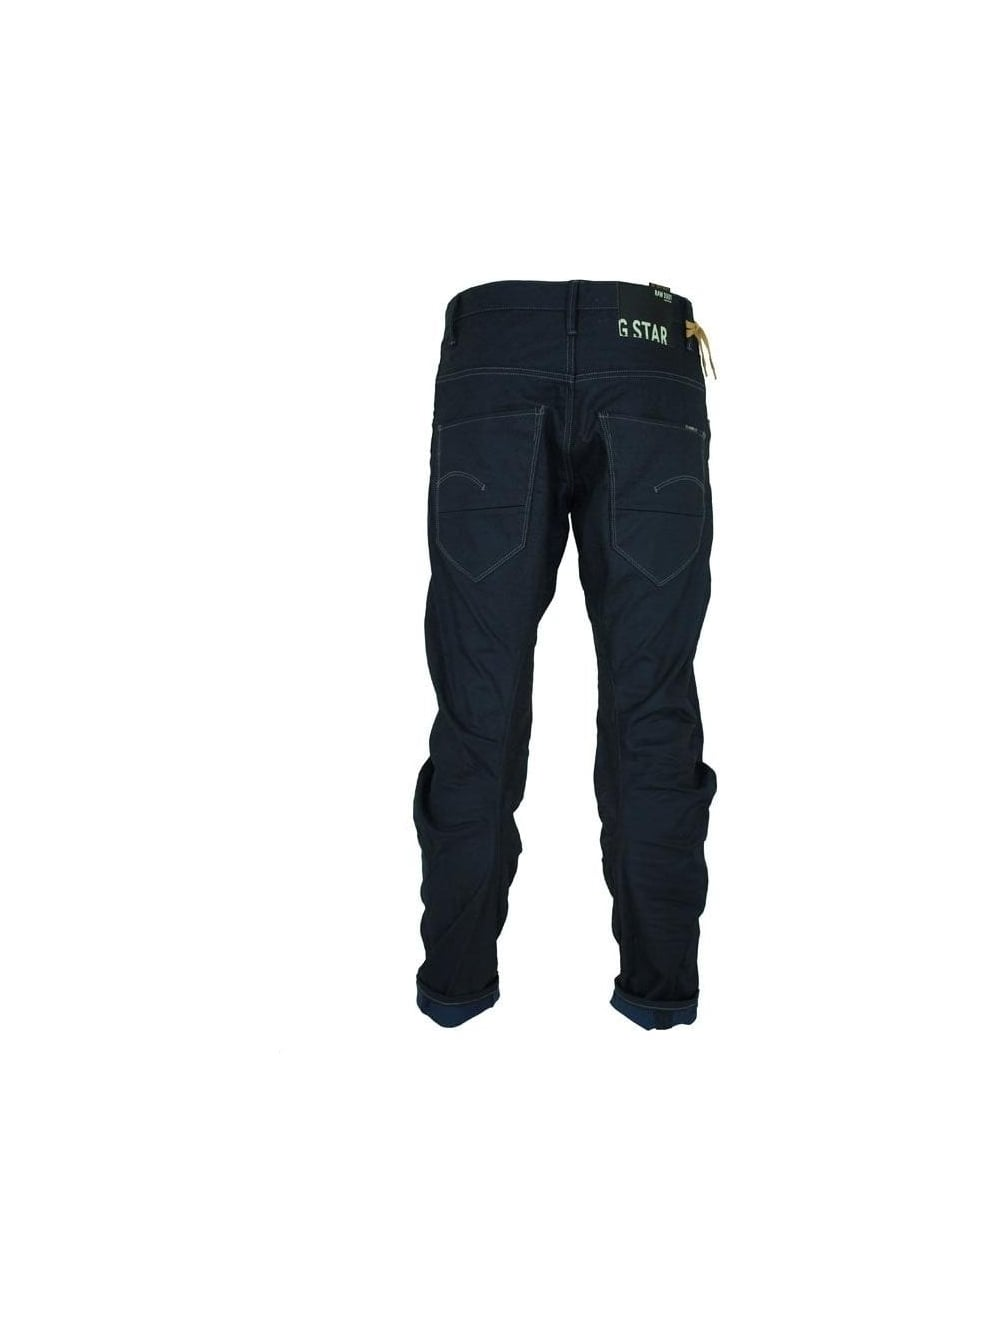 b9830d043c8 G Star - G Star Arc Loose Tapered Jeans - 3D Resin - G Star Jeans at ...